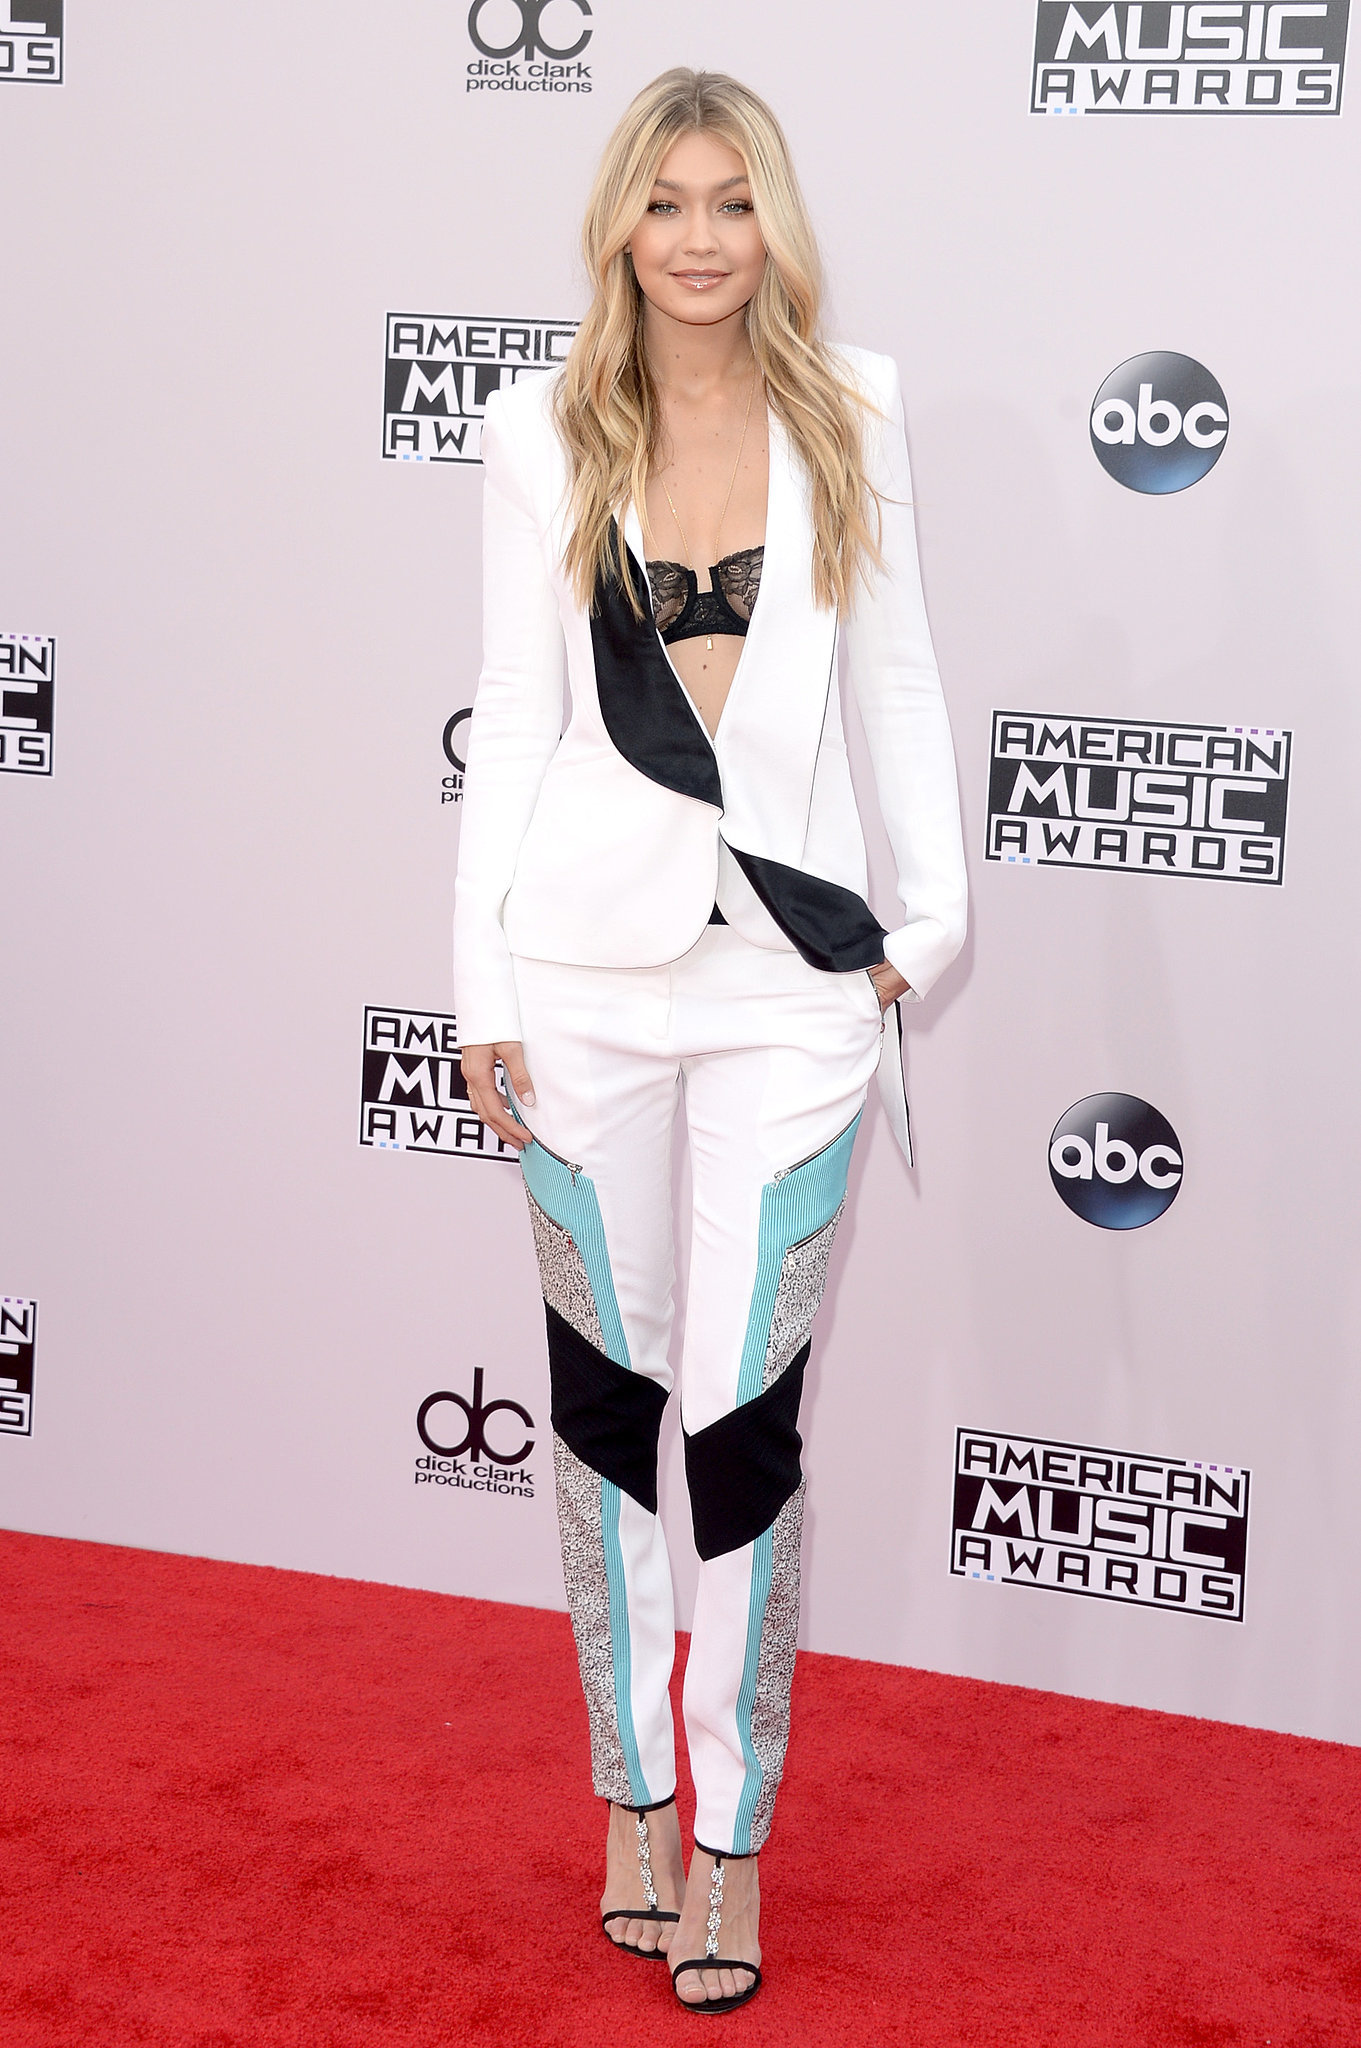 Gigi Hadid 2014 American Music Awards